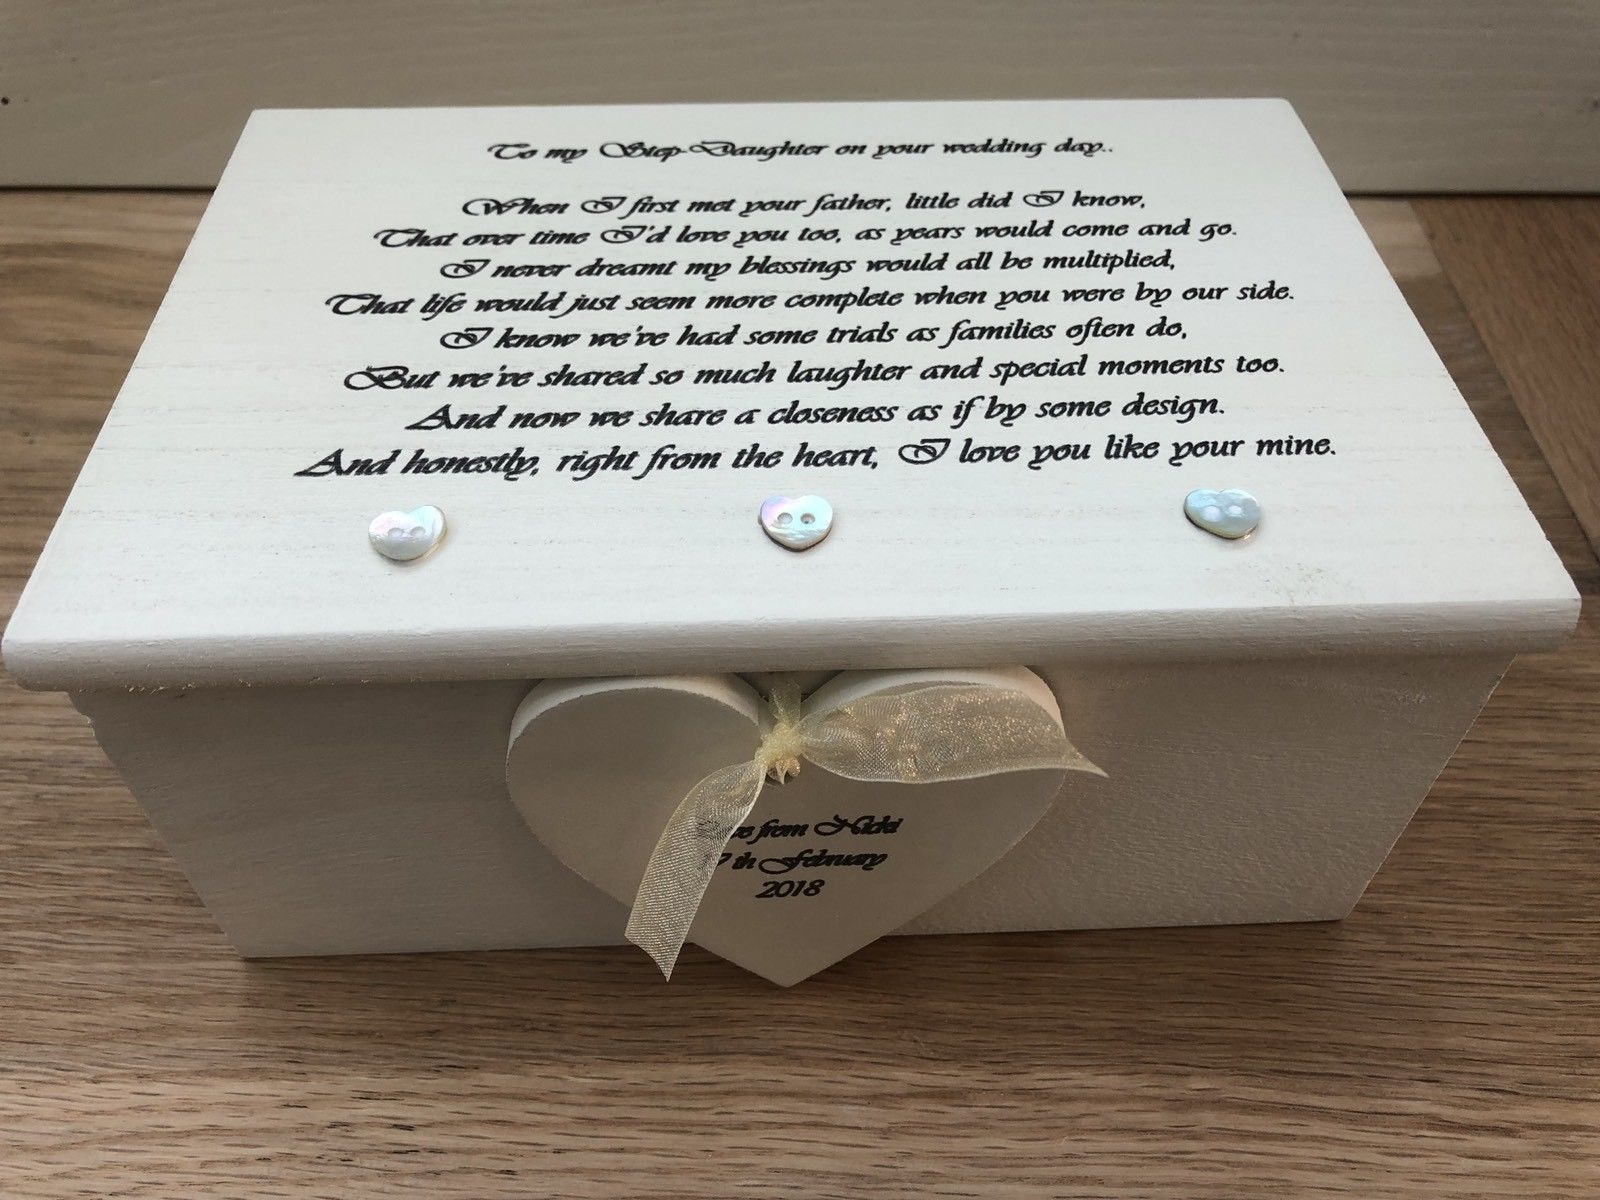 Shabby Personalised Chic Jewellery Box Gift For Step Daughter On Her